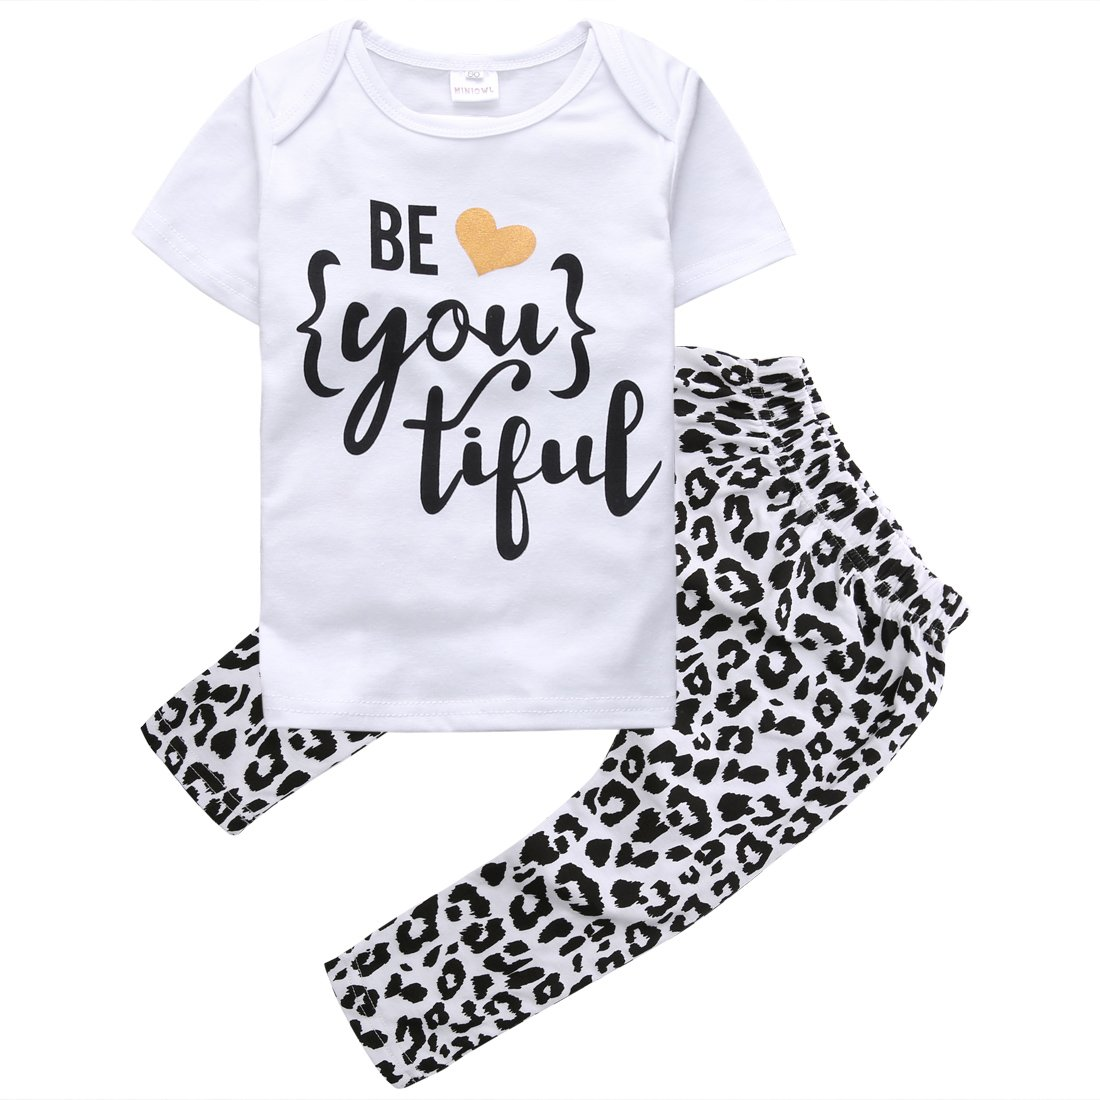 Baby Girls Short Sleeve Letters be you tiful T-shirt and Leopard Pants Outfit